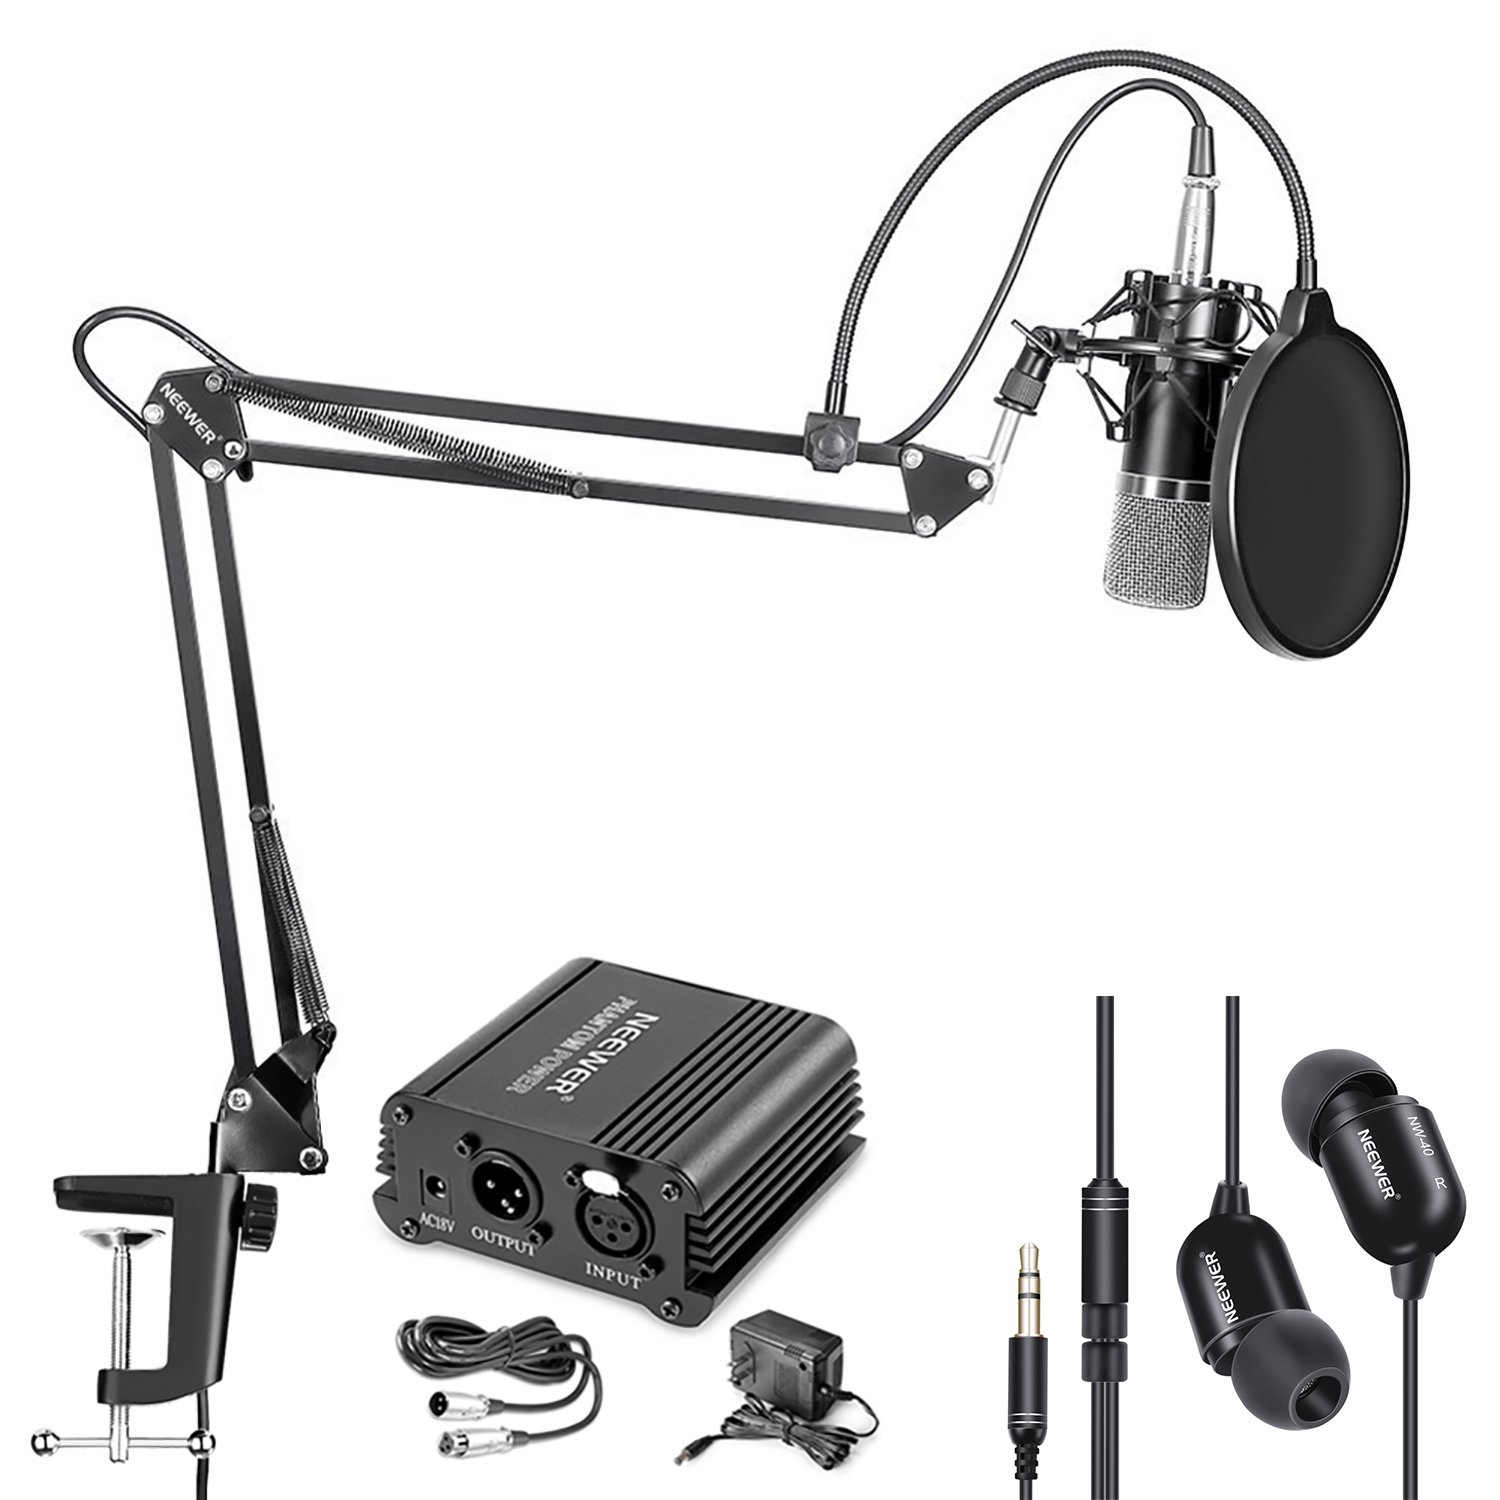 Neewer NW-700 Condenser Microphone and Monitor Earphone Kit Includes 48V Phantom Power Supply, NW-35 Boom Scissor Arm Stand, Shock Mount and Pop Filter for Home Studio Sound Recording(Black) 90094012